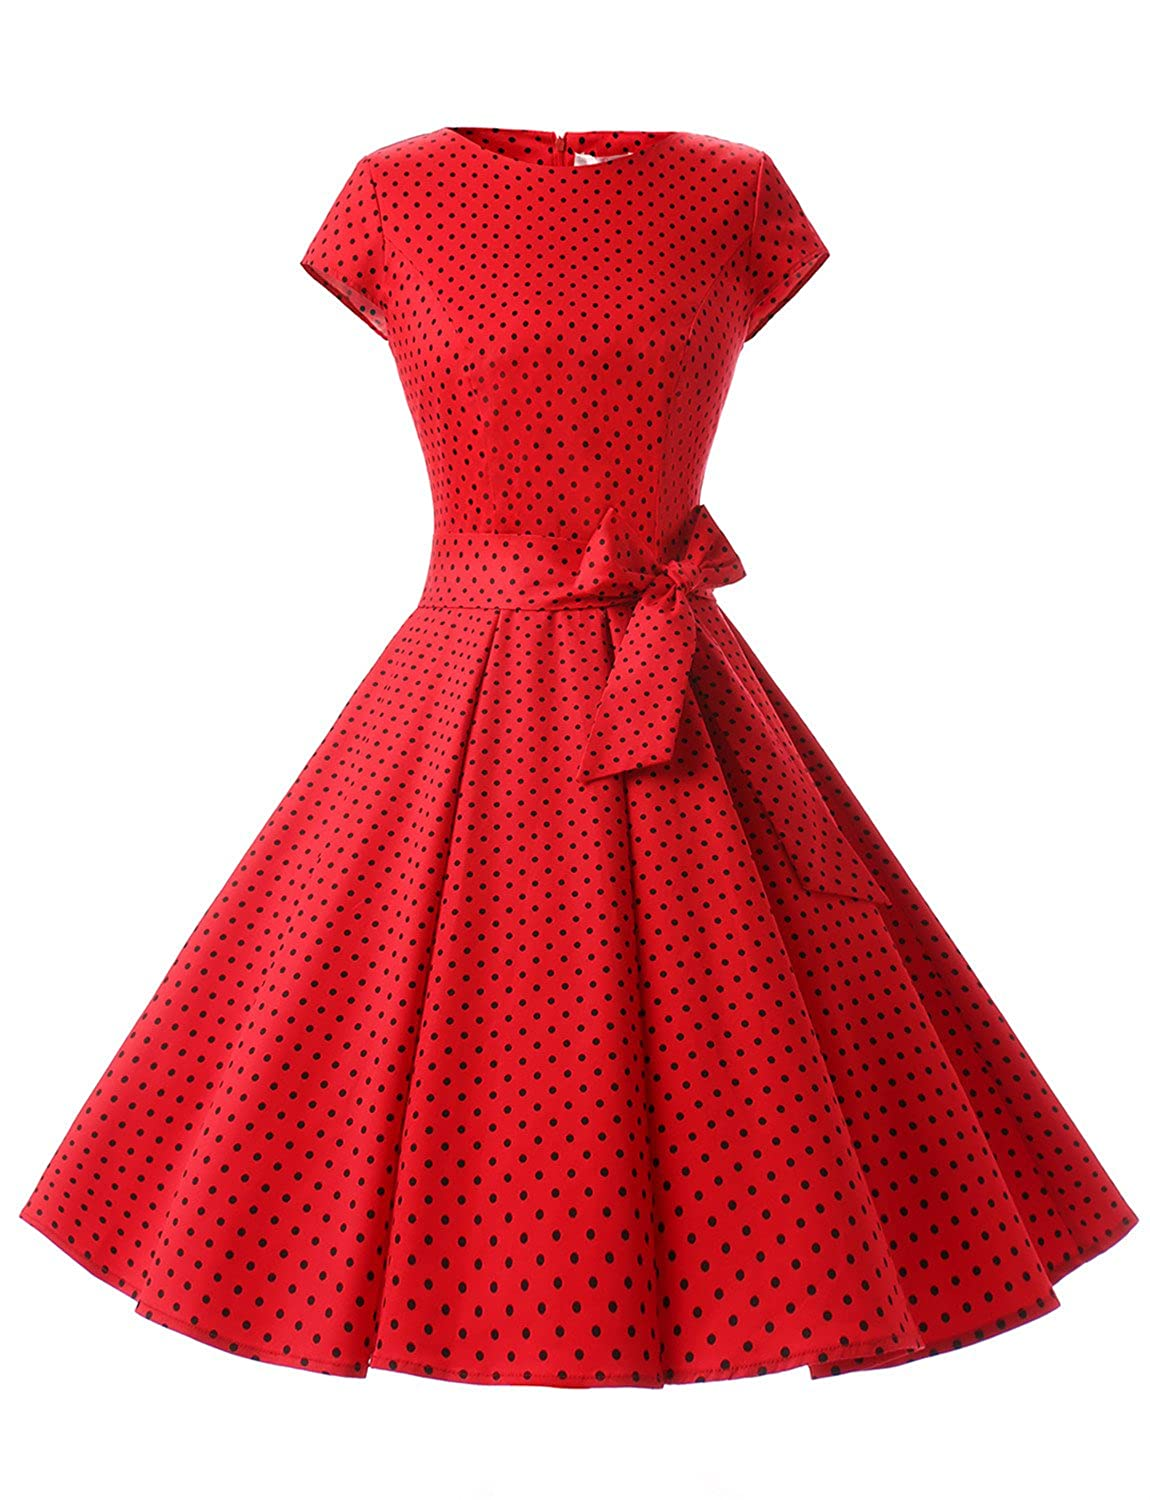 1950s Style Dresses, Pinup Dresses, Swing Dresses